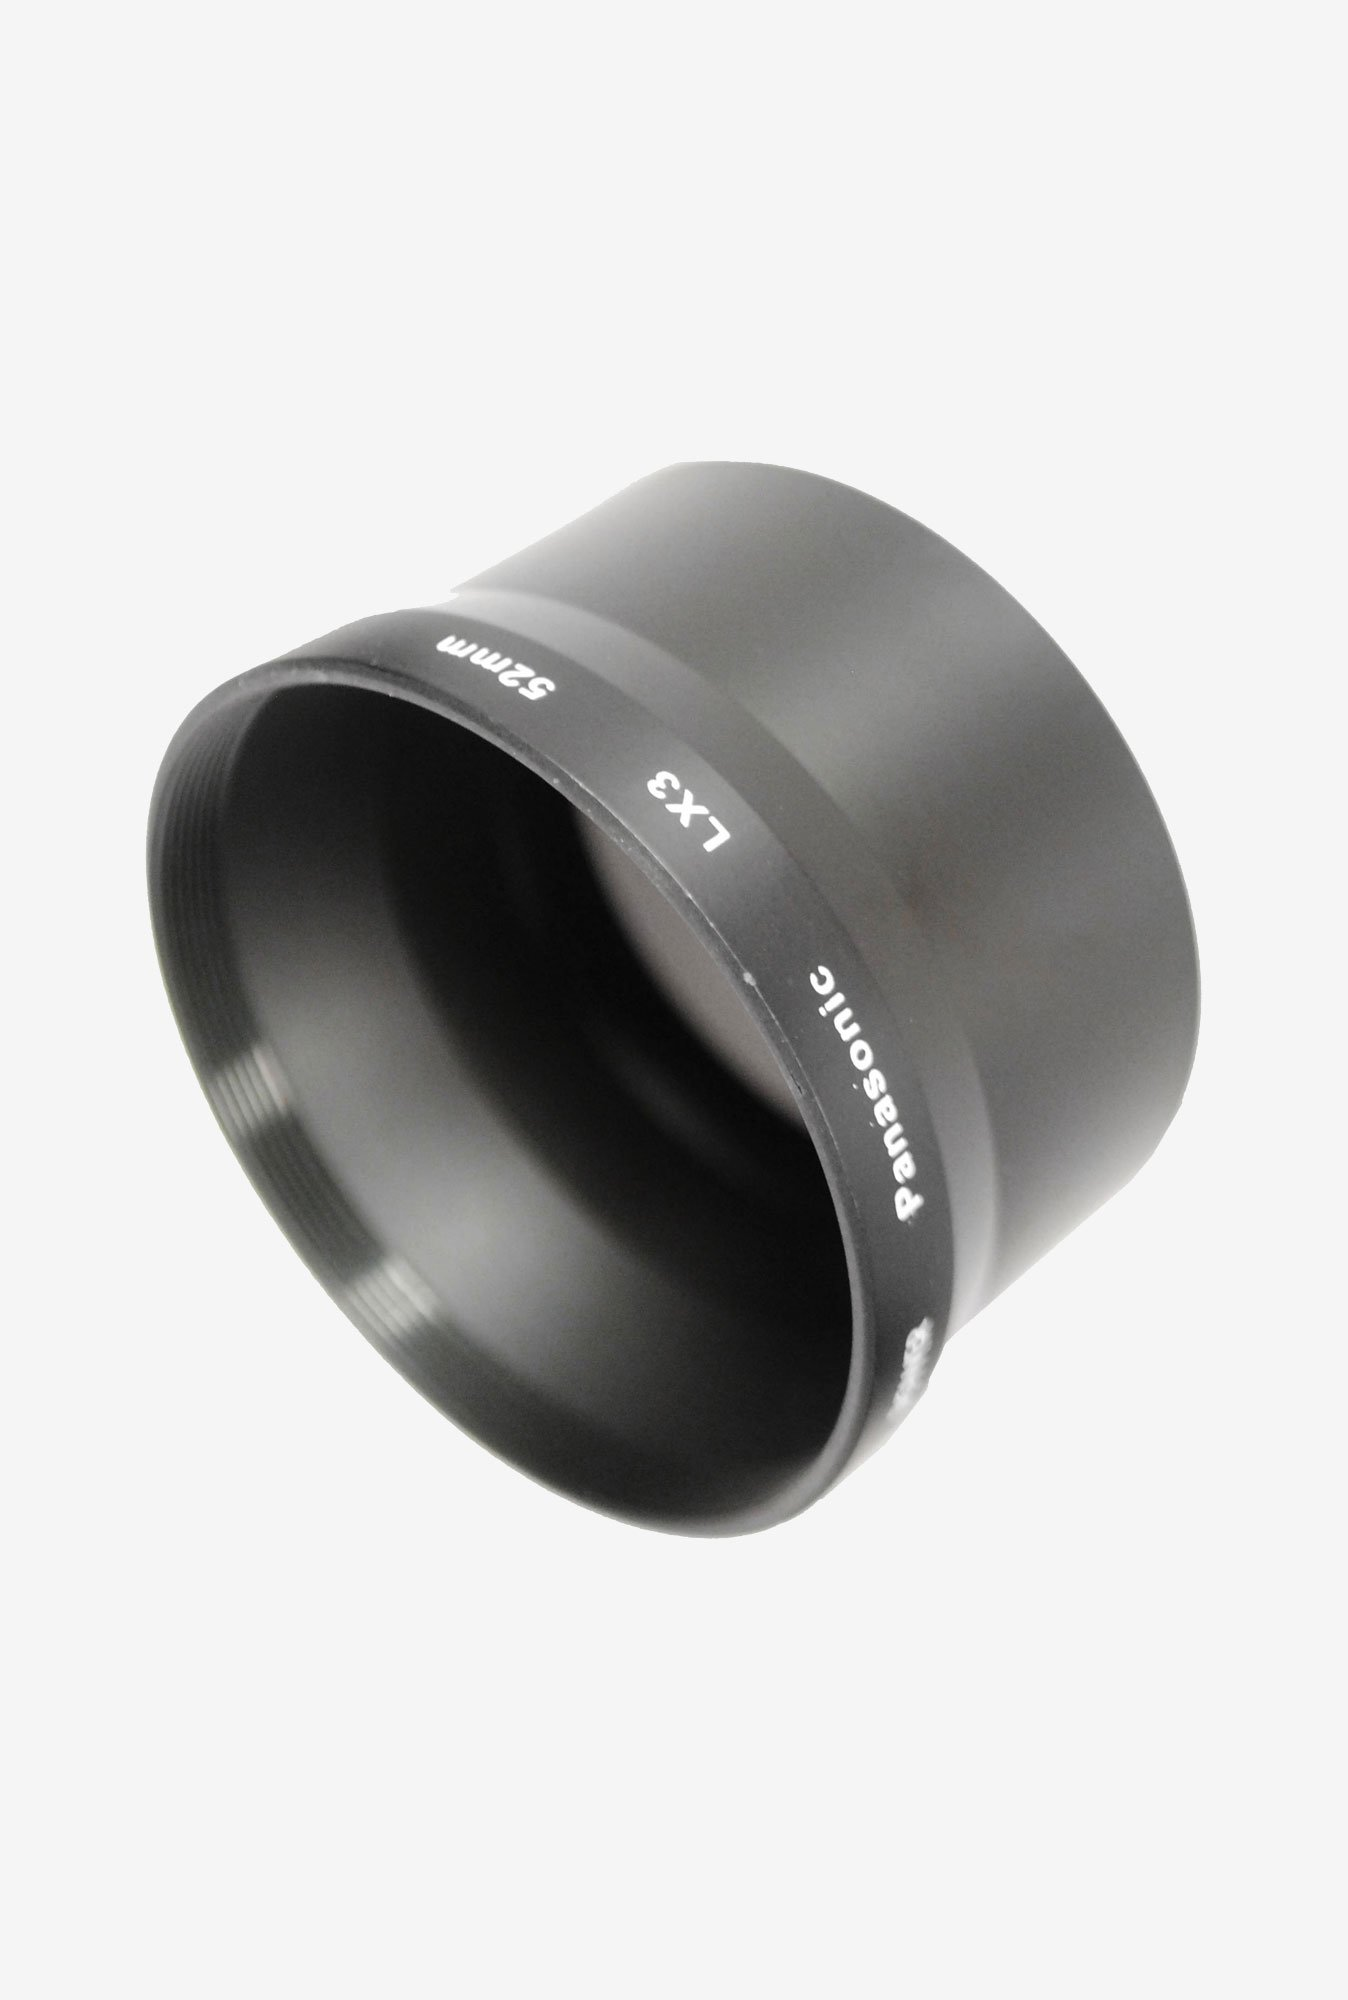 Bower A4552PA3 Panasonic Lx-3 52 Mm Adapter Tube (Black)